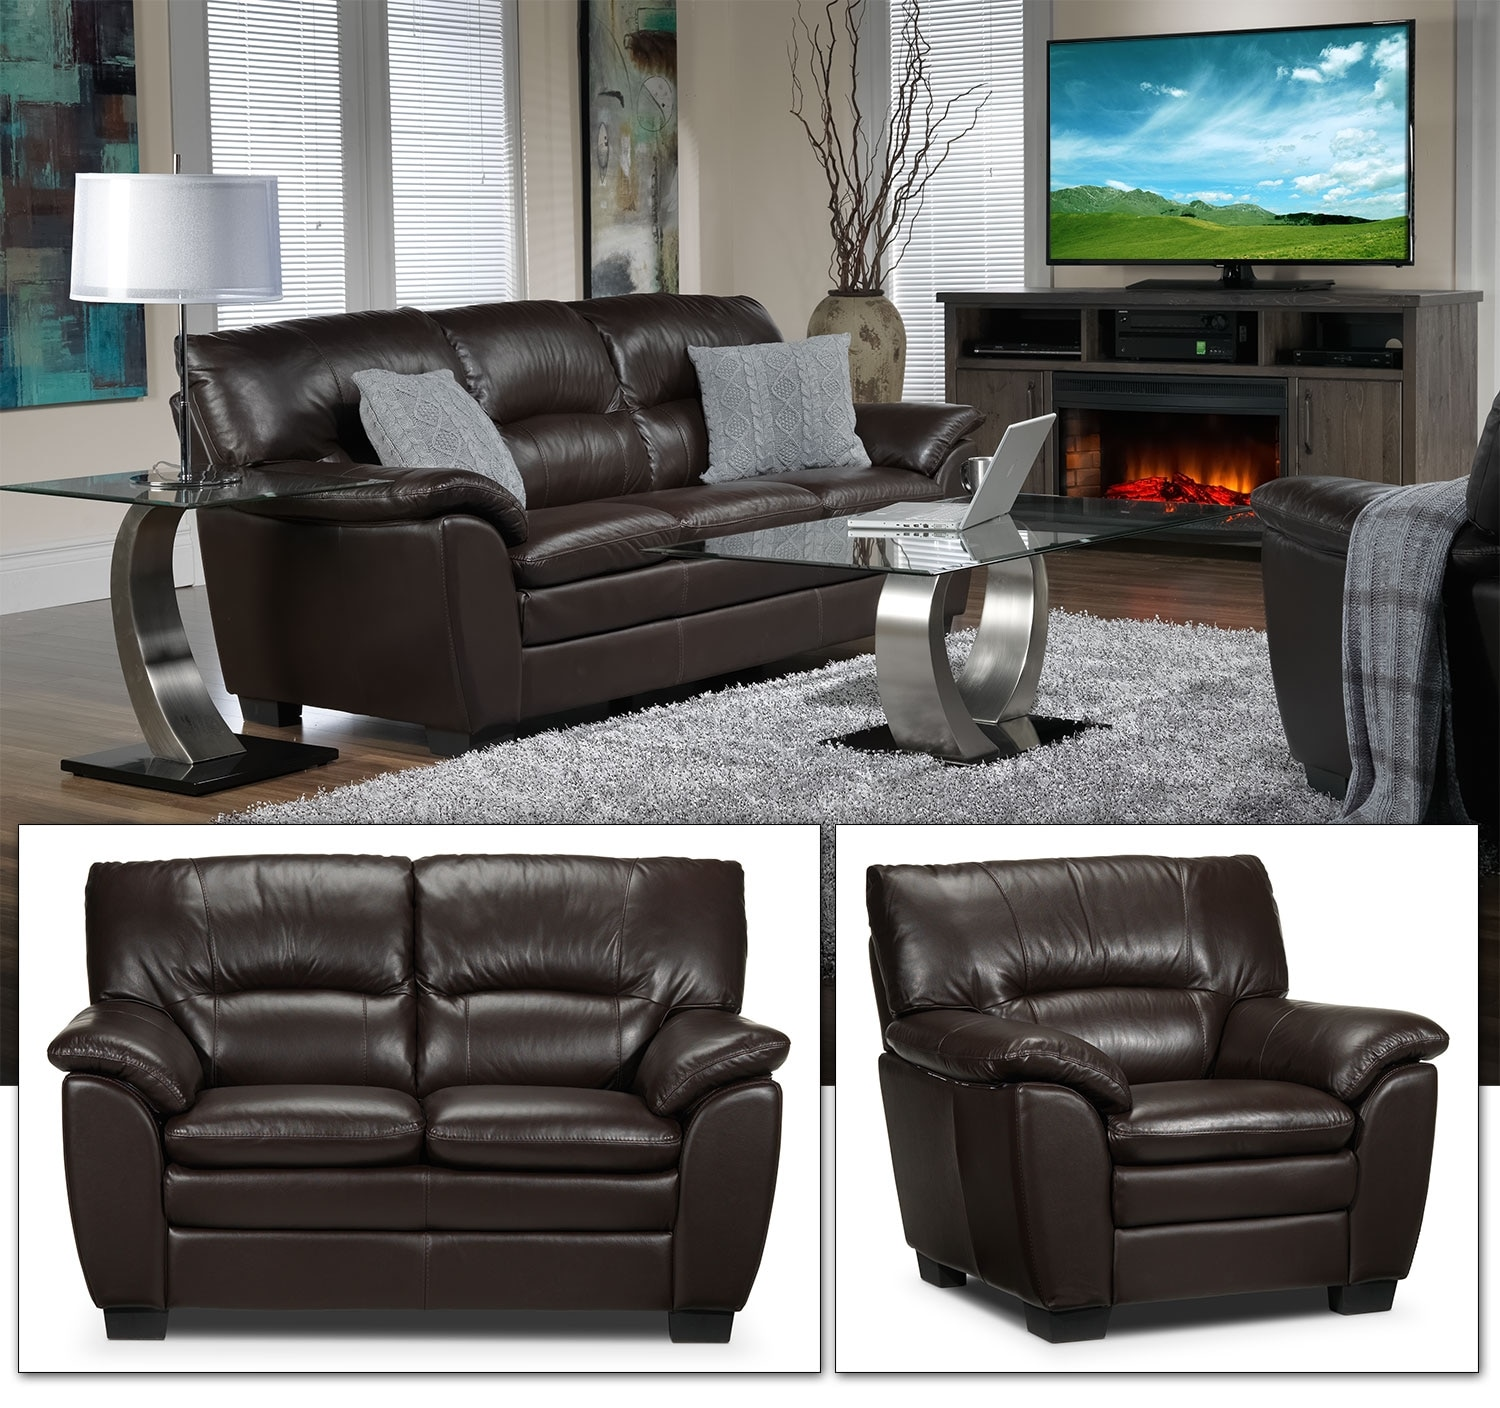 Rodero Sofa, Loveseat and Chair Set - Brown